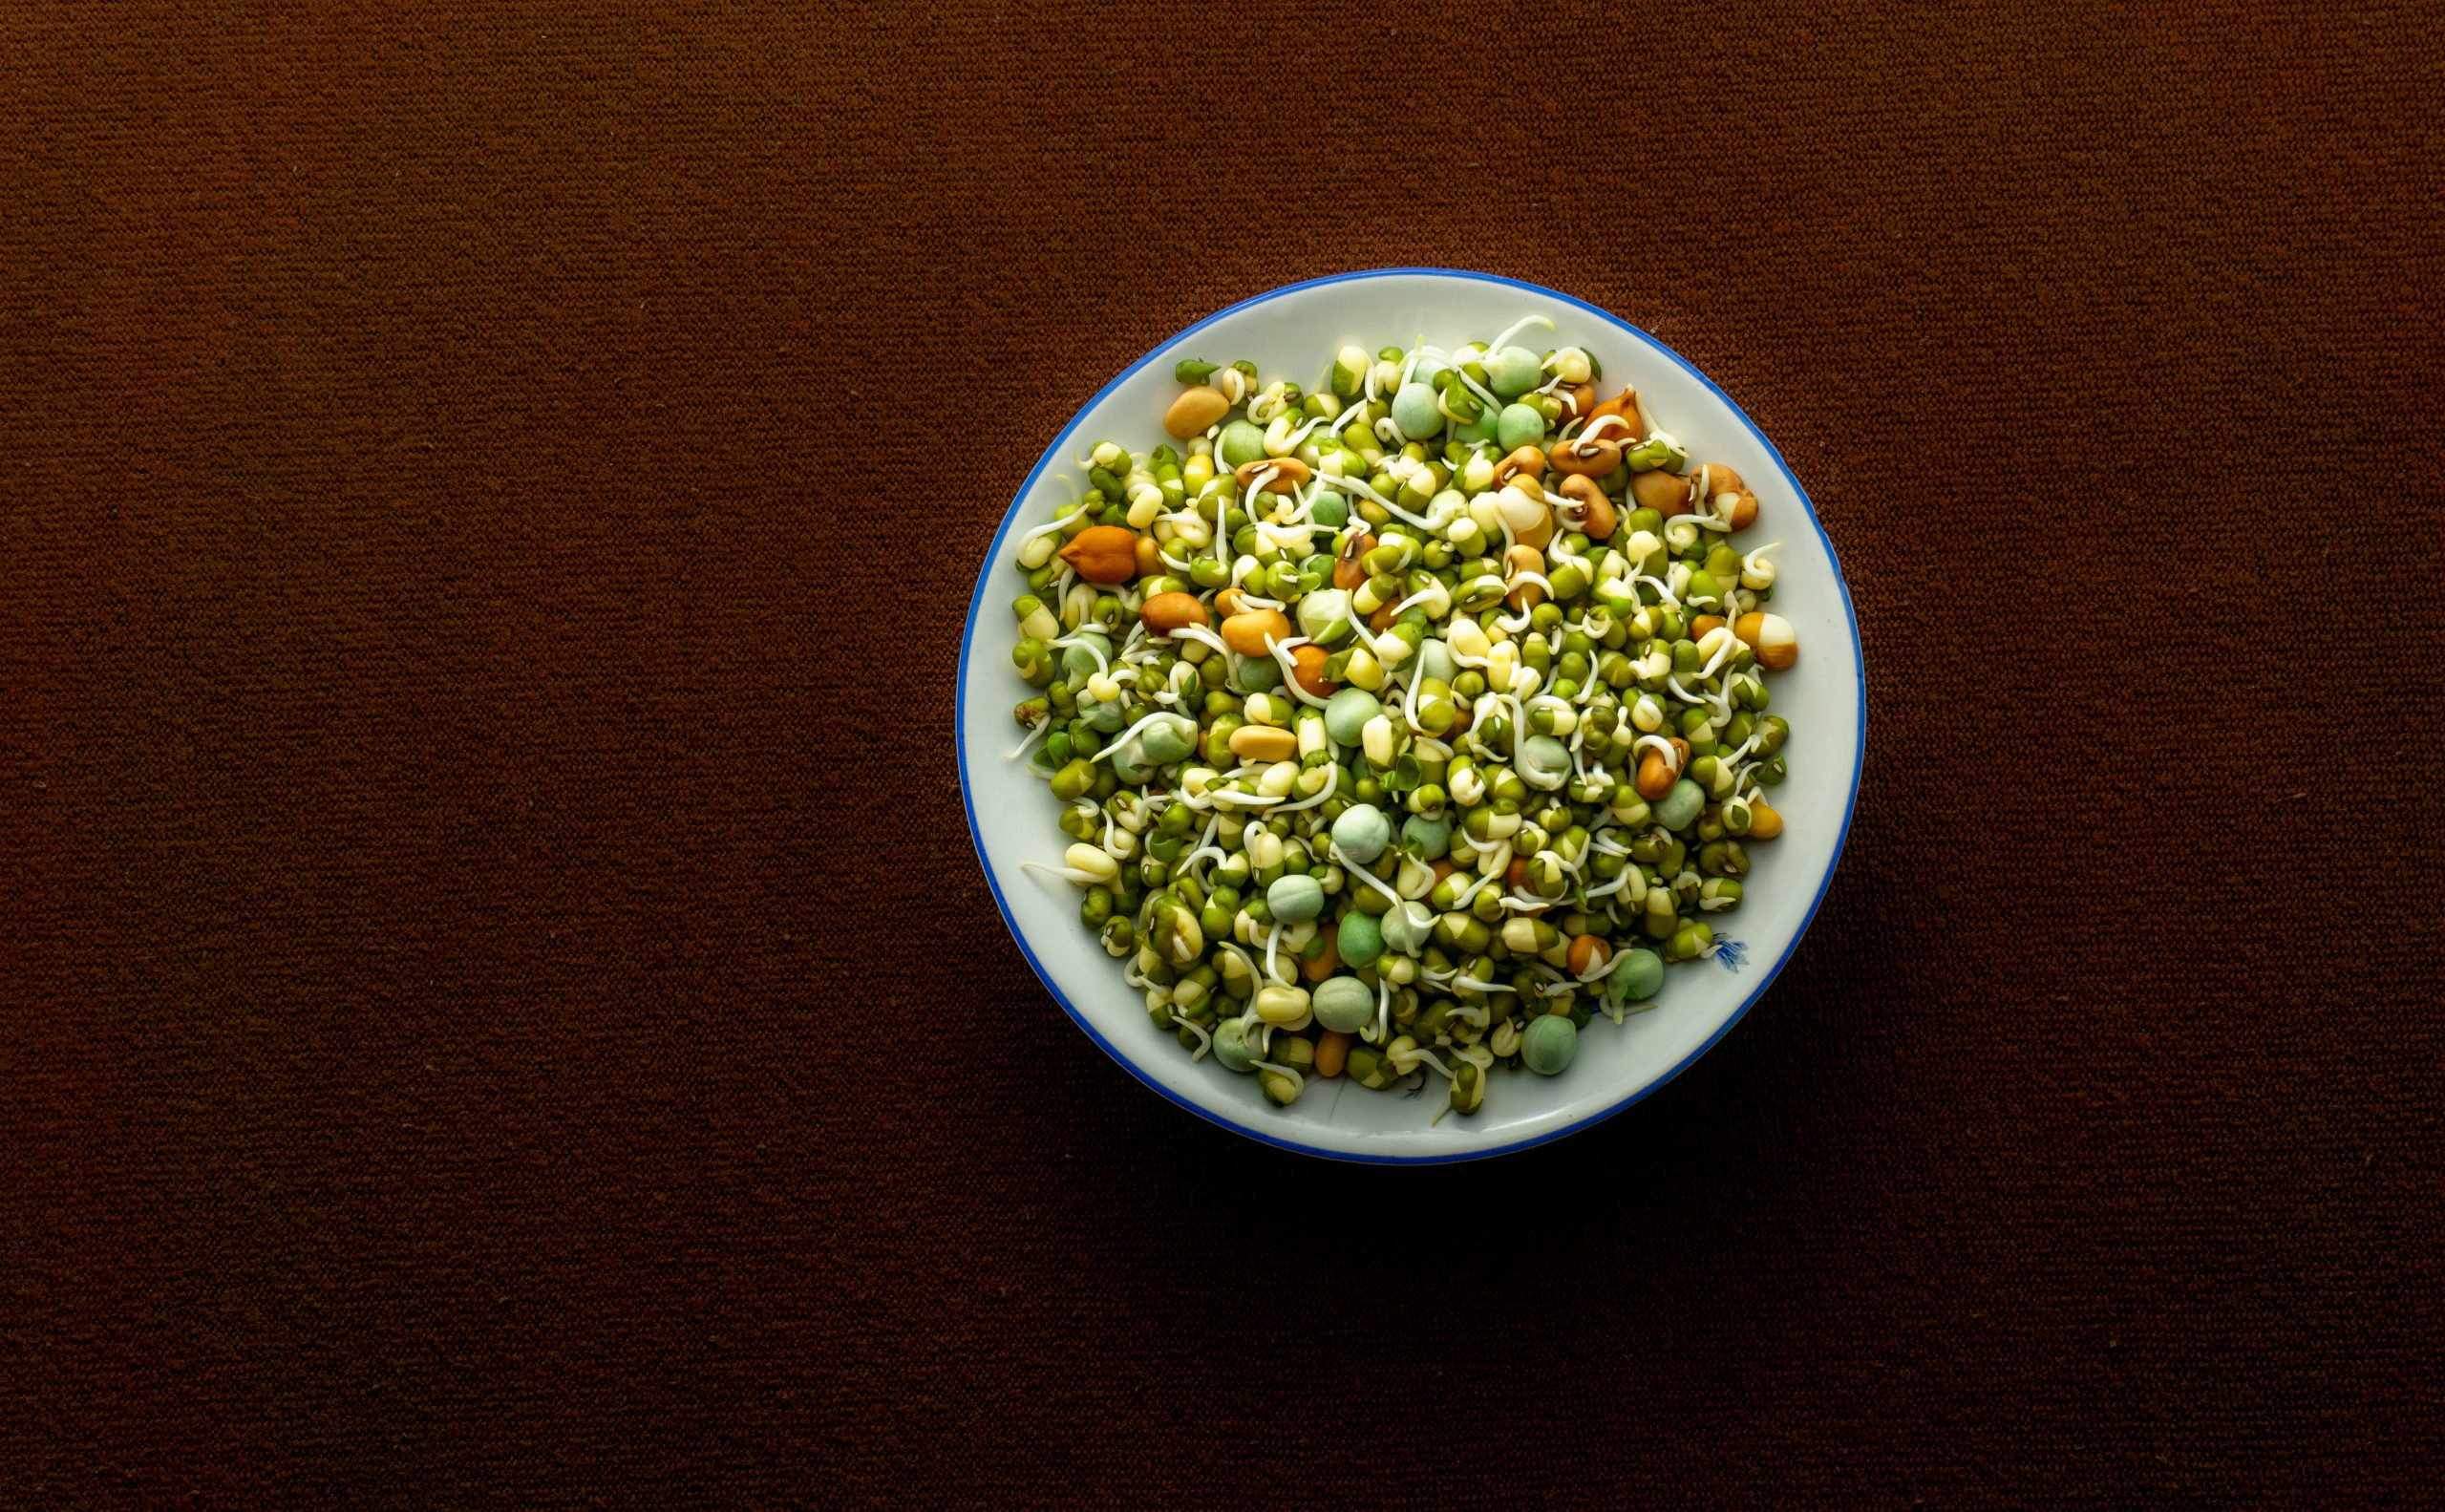 Gram sprouts in a plate